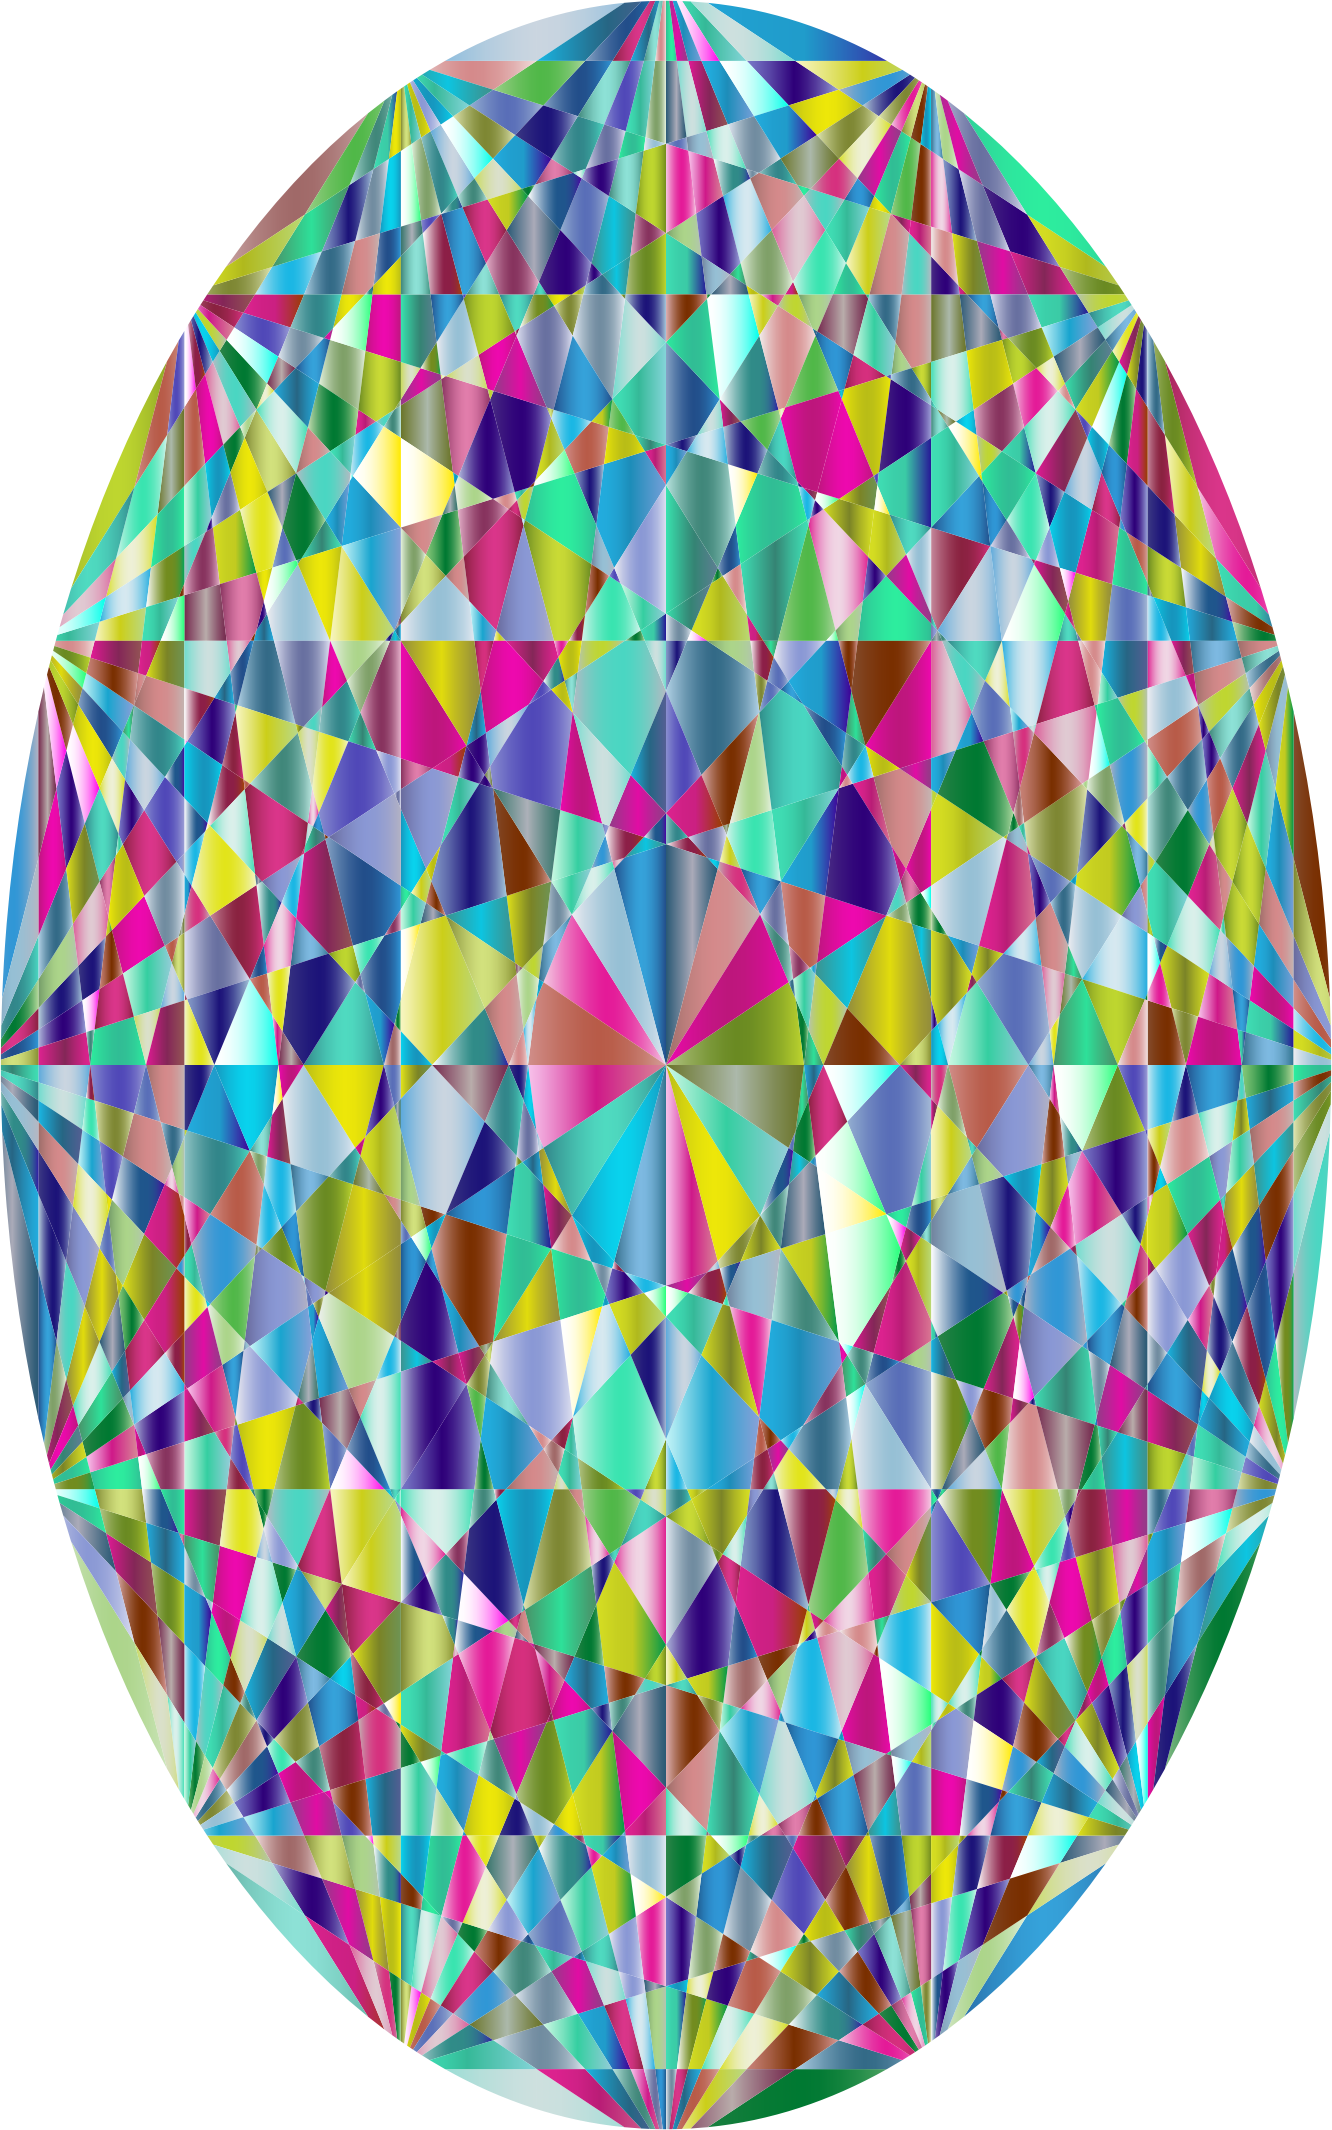 Prismatic Easter Egg 2 by GDJ